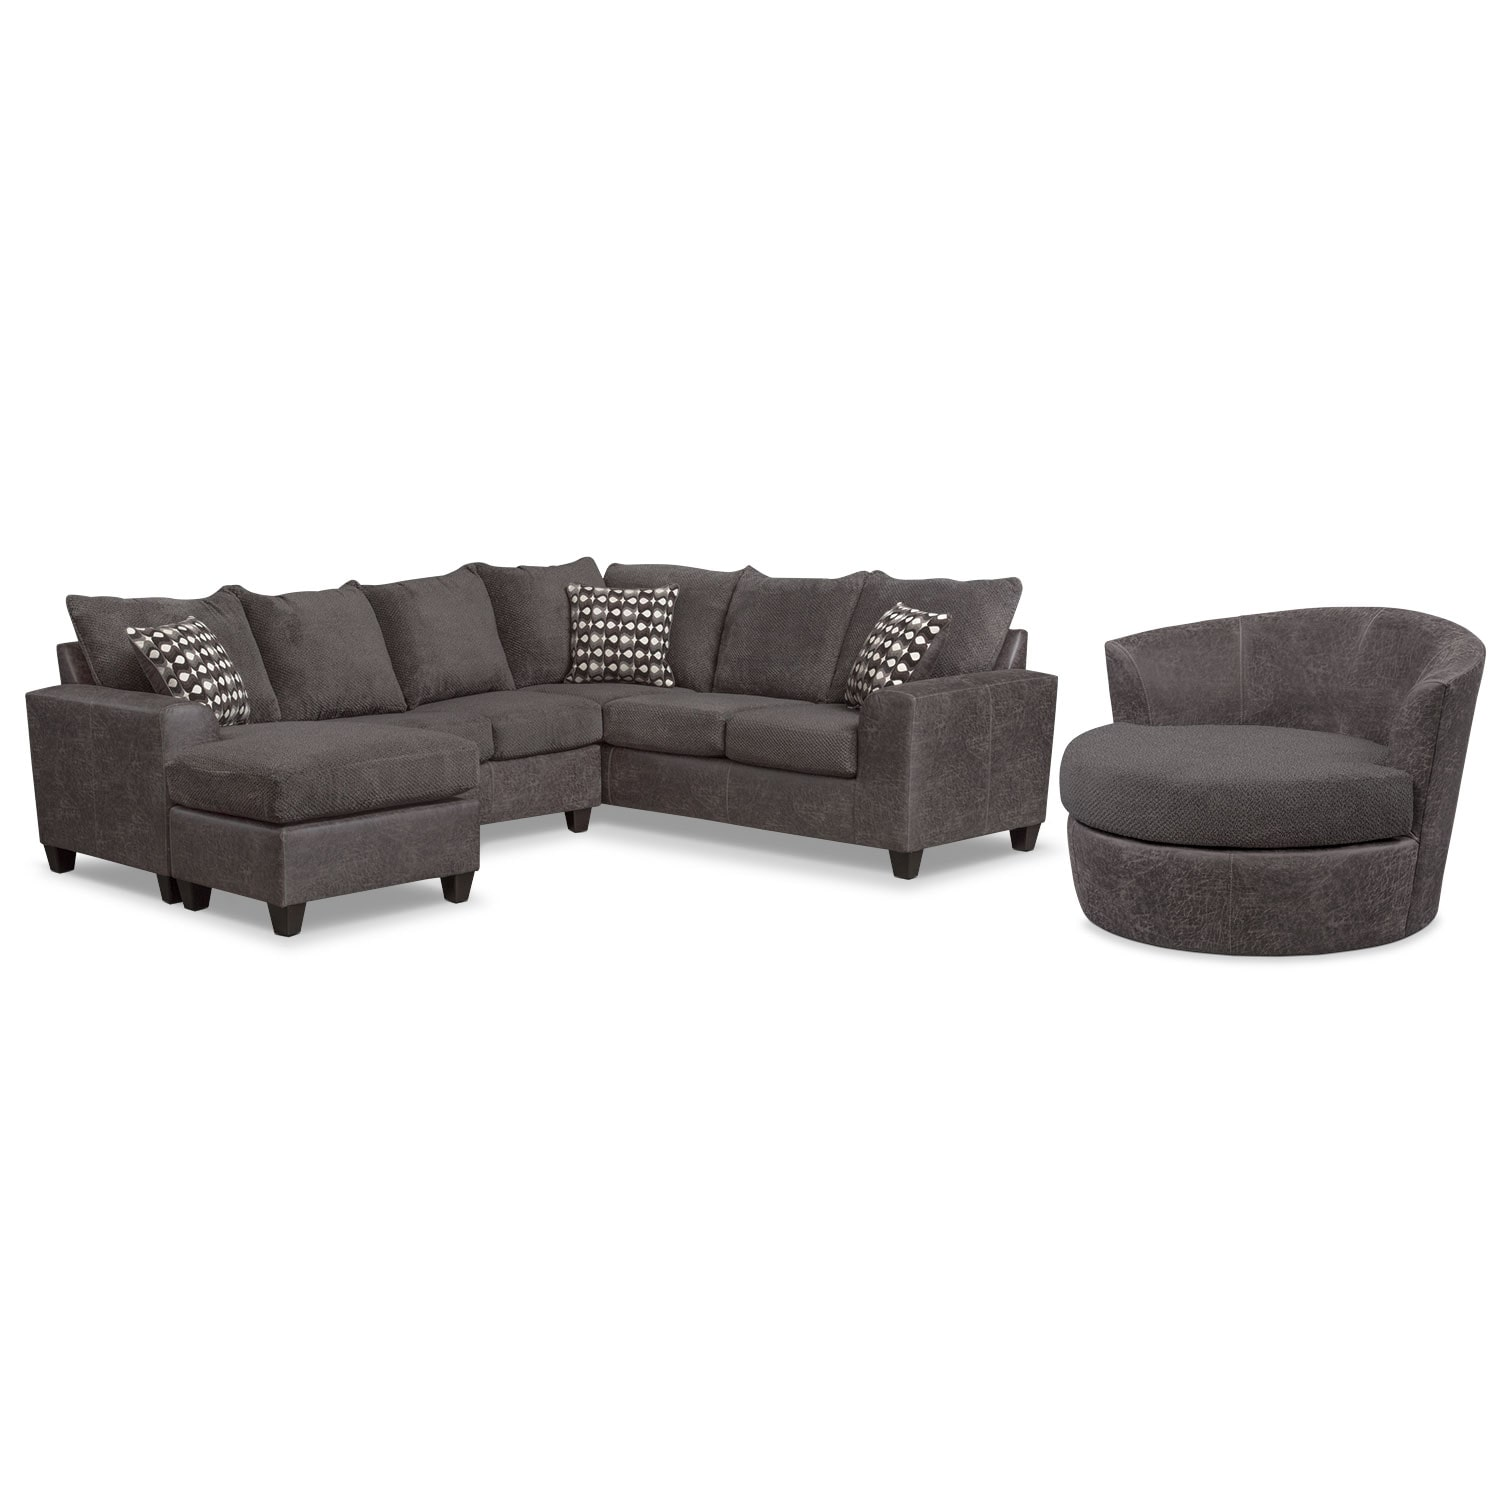 Living Room Furniture - Brando 3-Piece Sectional w/ Chaise and Swivel Chair Set - Smoke